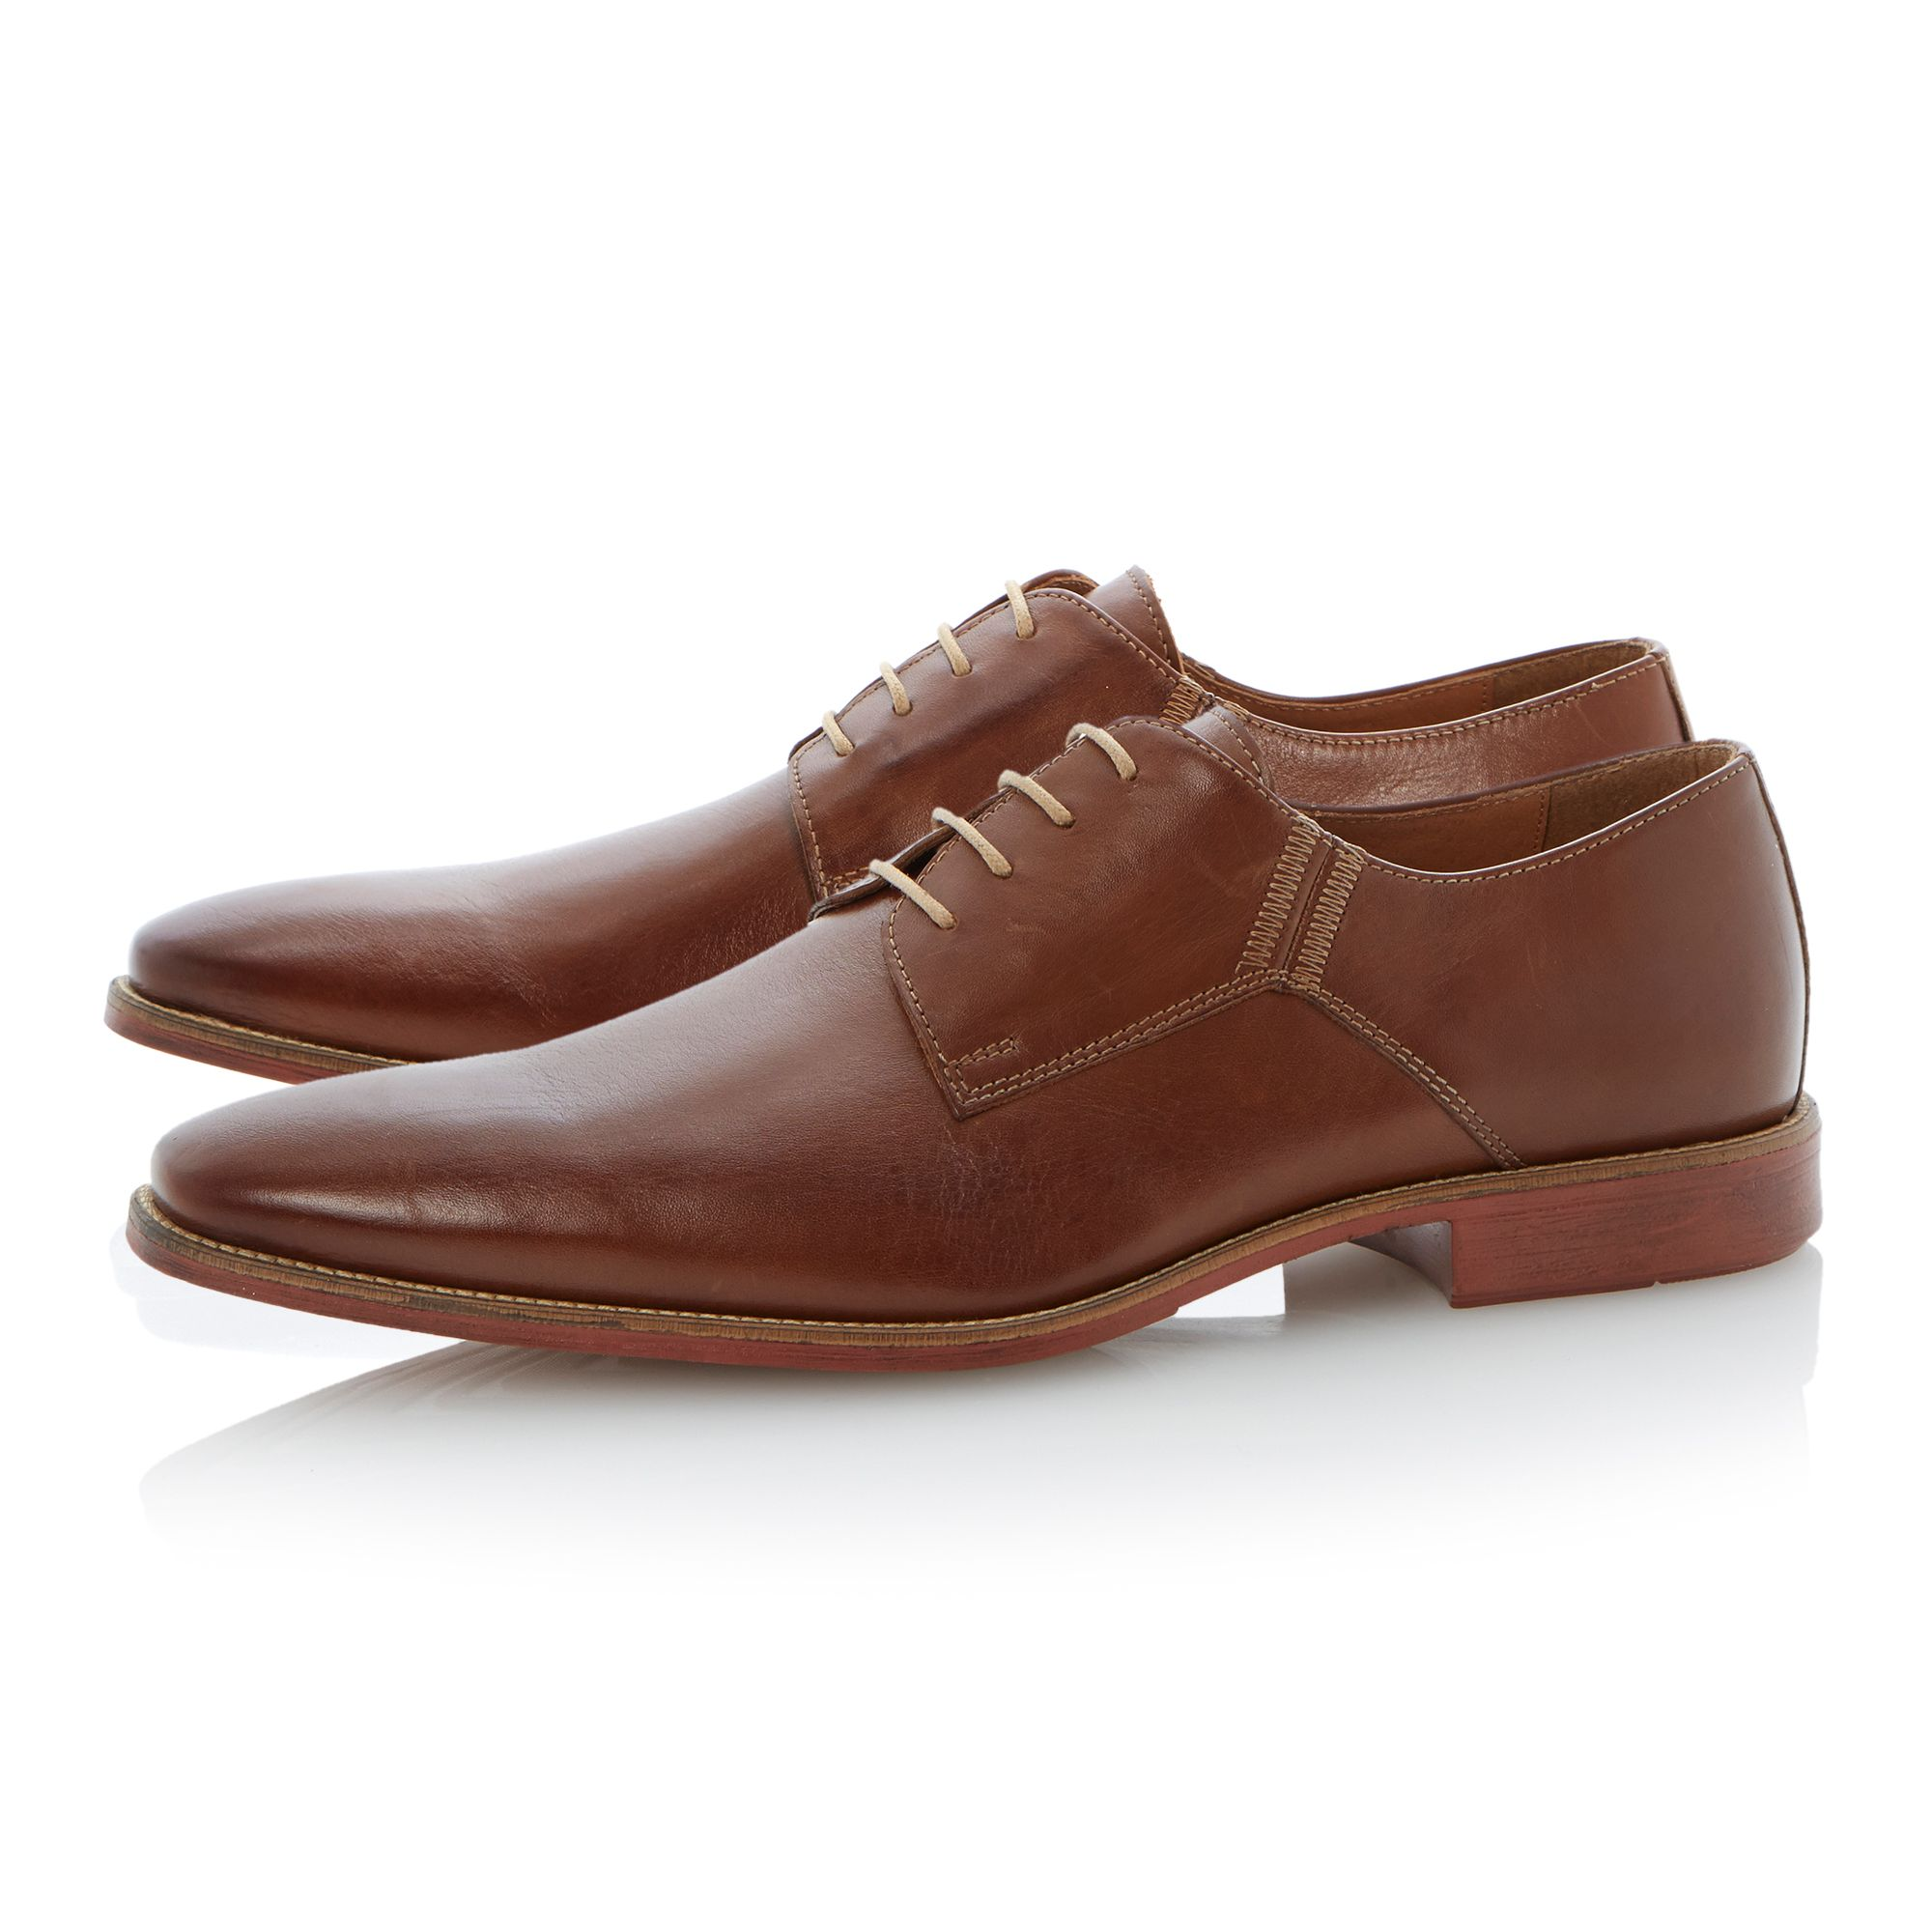 Roland Cartier Leather Belgravia Contrast Stitch Chisel Lace Up in Tan (Brown) for Men